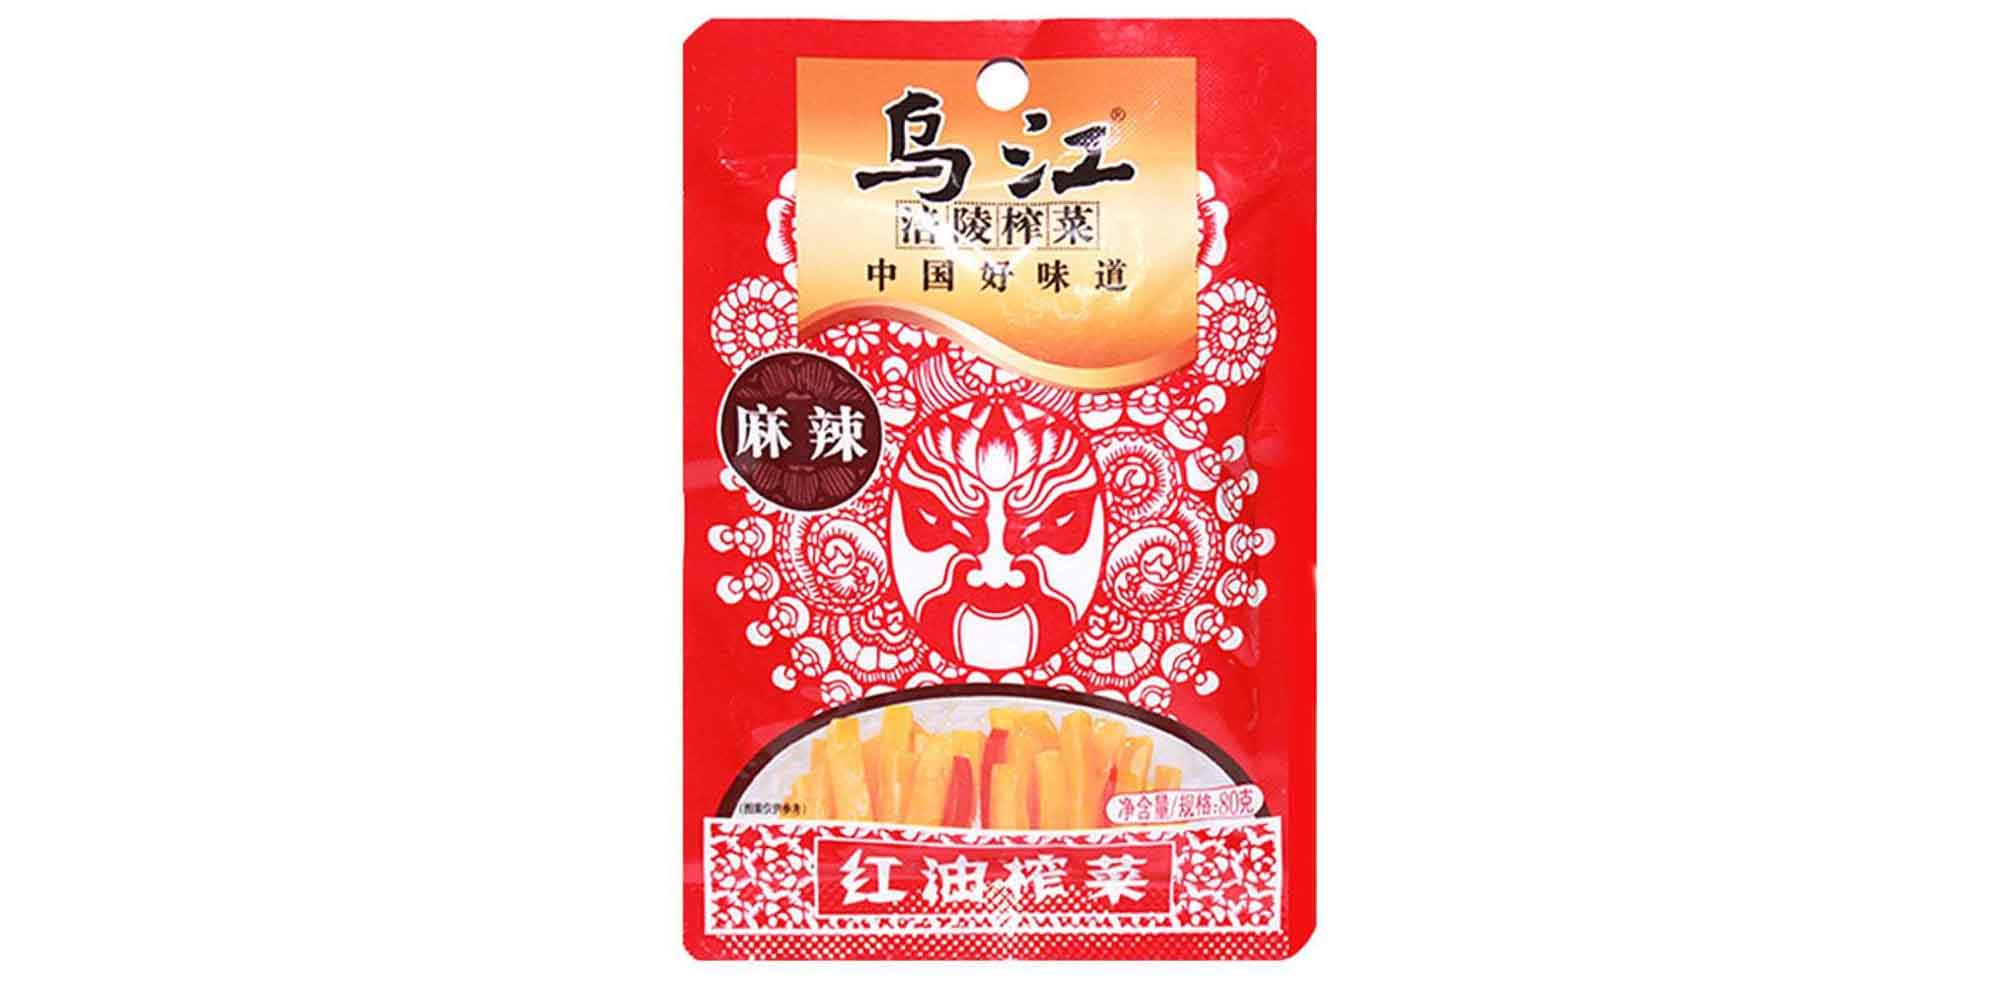 WUJIANG Hot Spicy Flavour Preserved Mustard Tuber 2.82 Oz (80 g) - 乌江麻辣红油榨菜